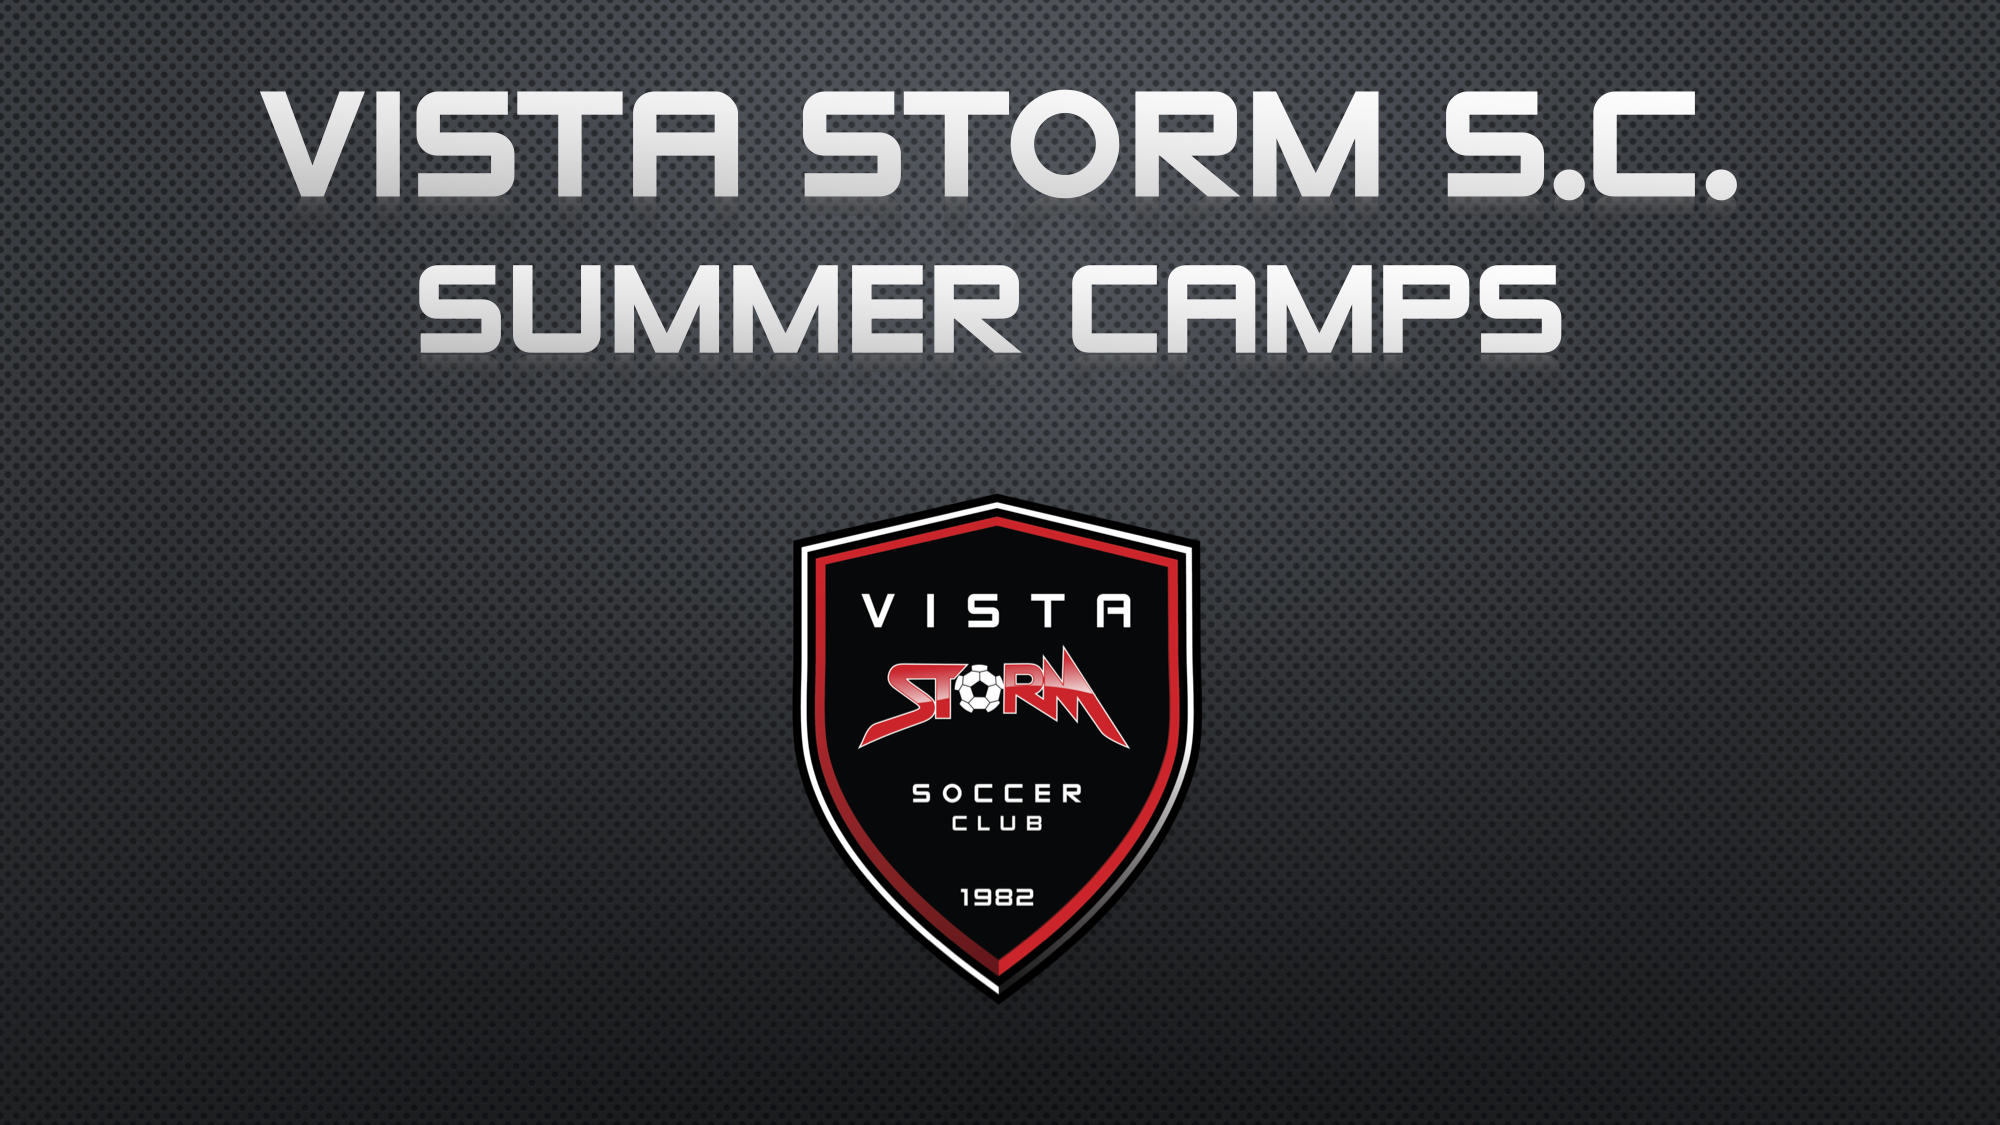 Vista Storm S.C. Summer Camps